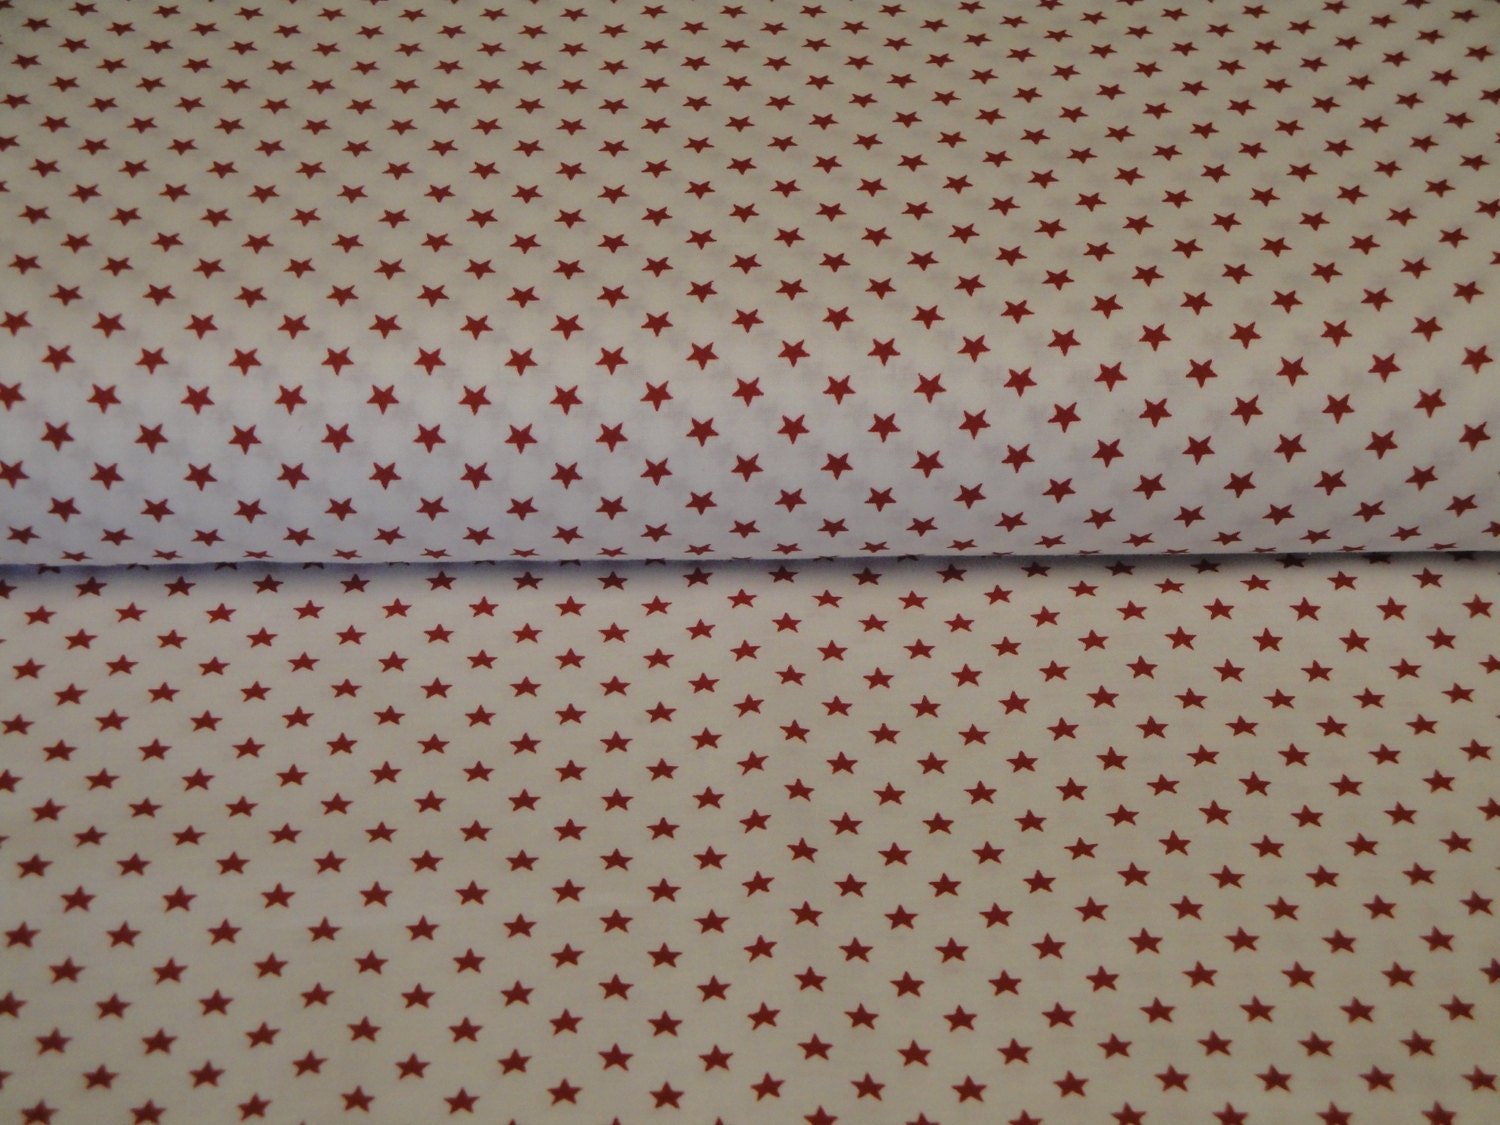 Star fabric cotton fabric with red stars old glory for Star fabric australia